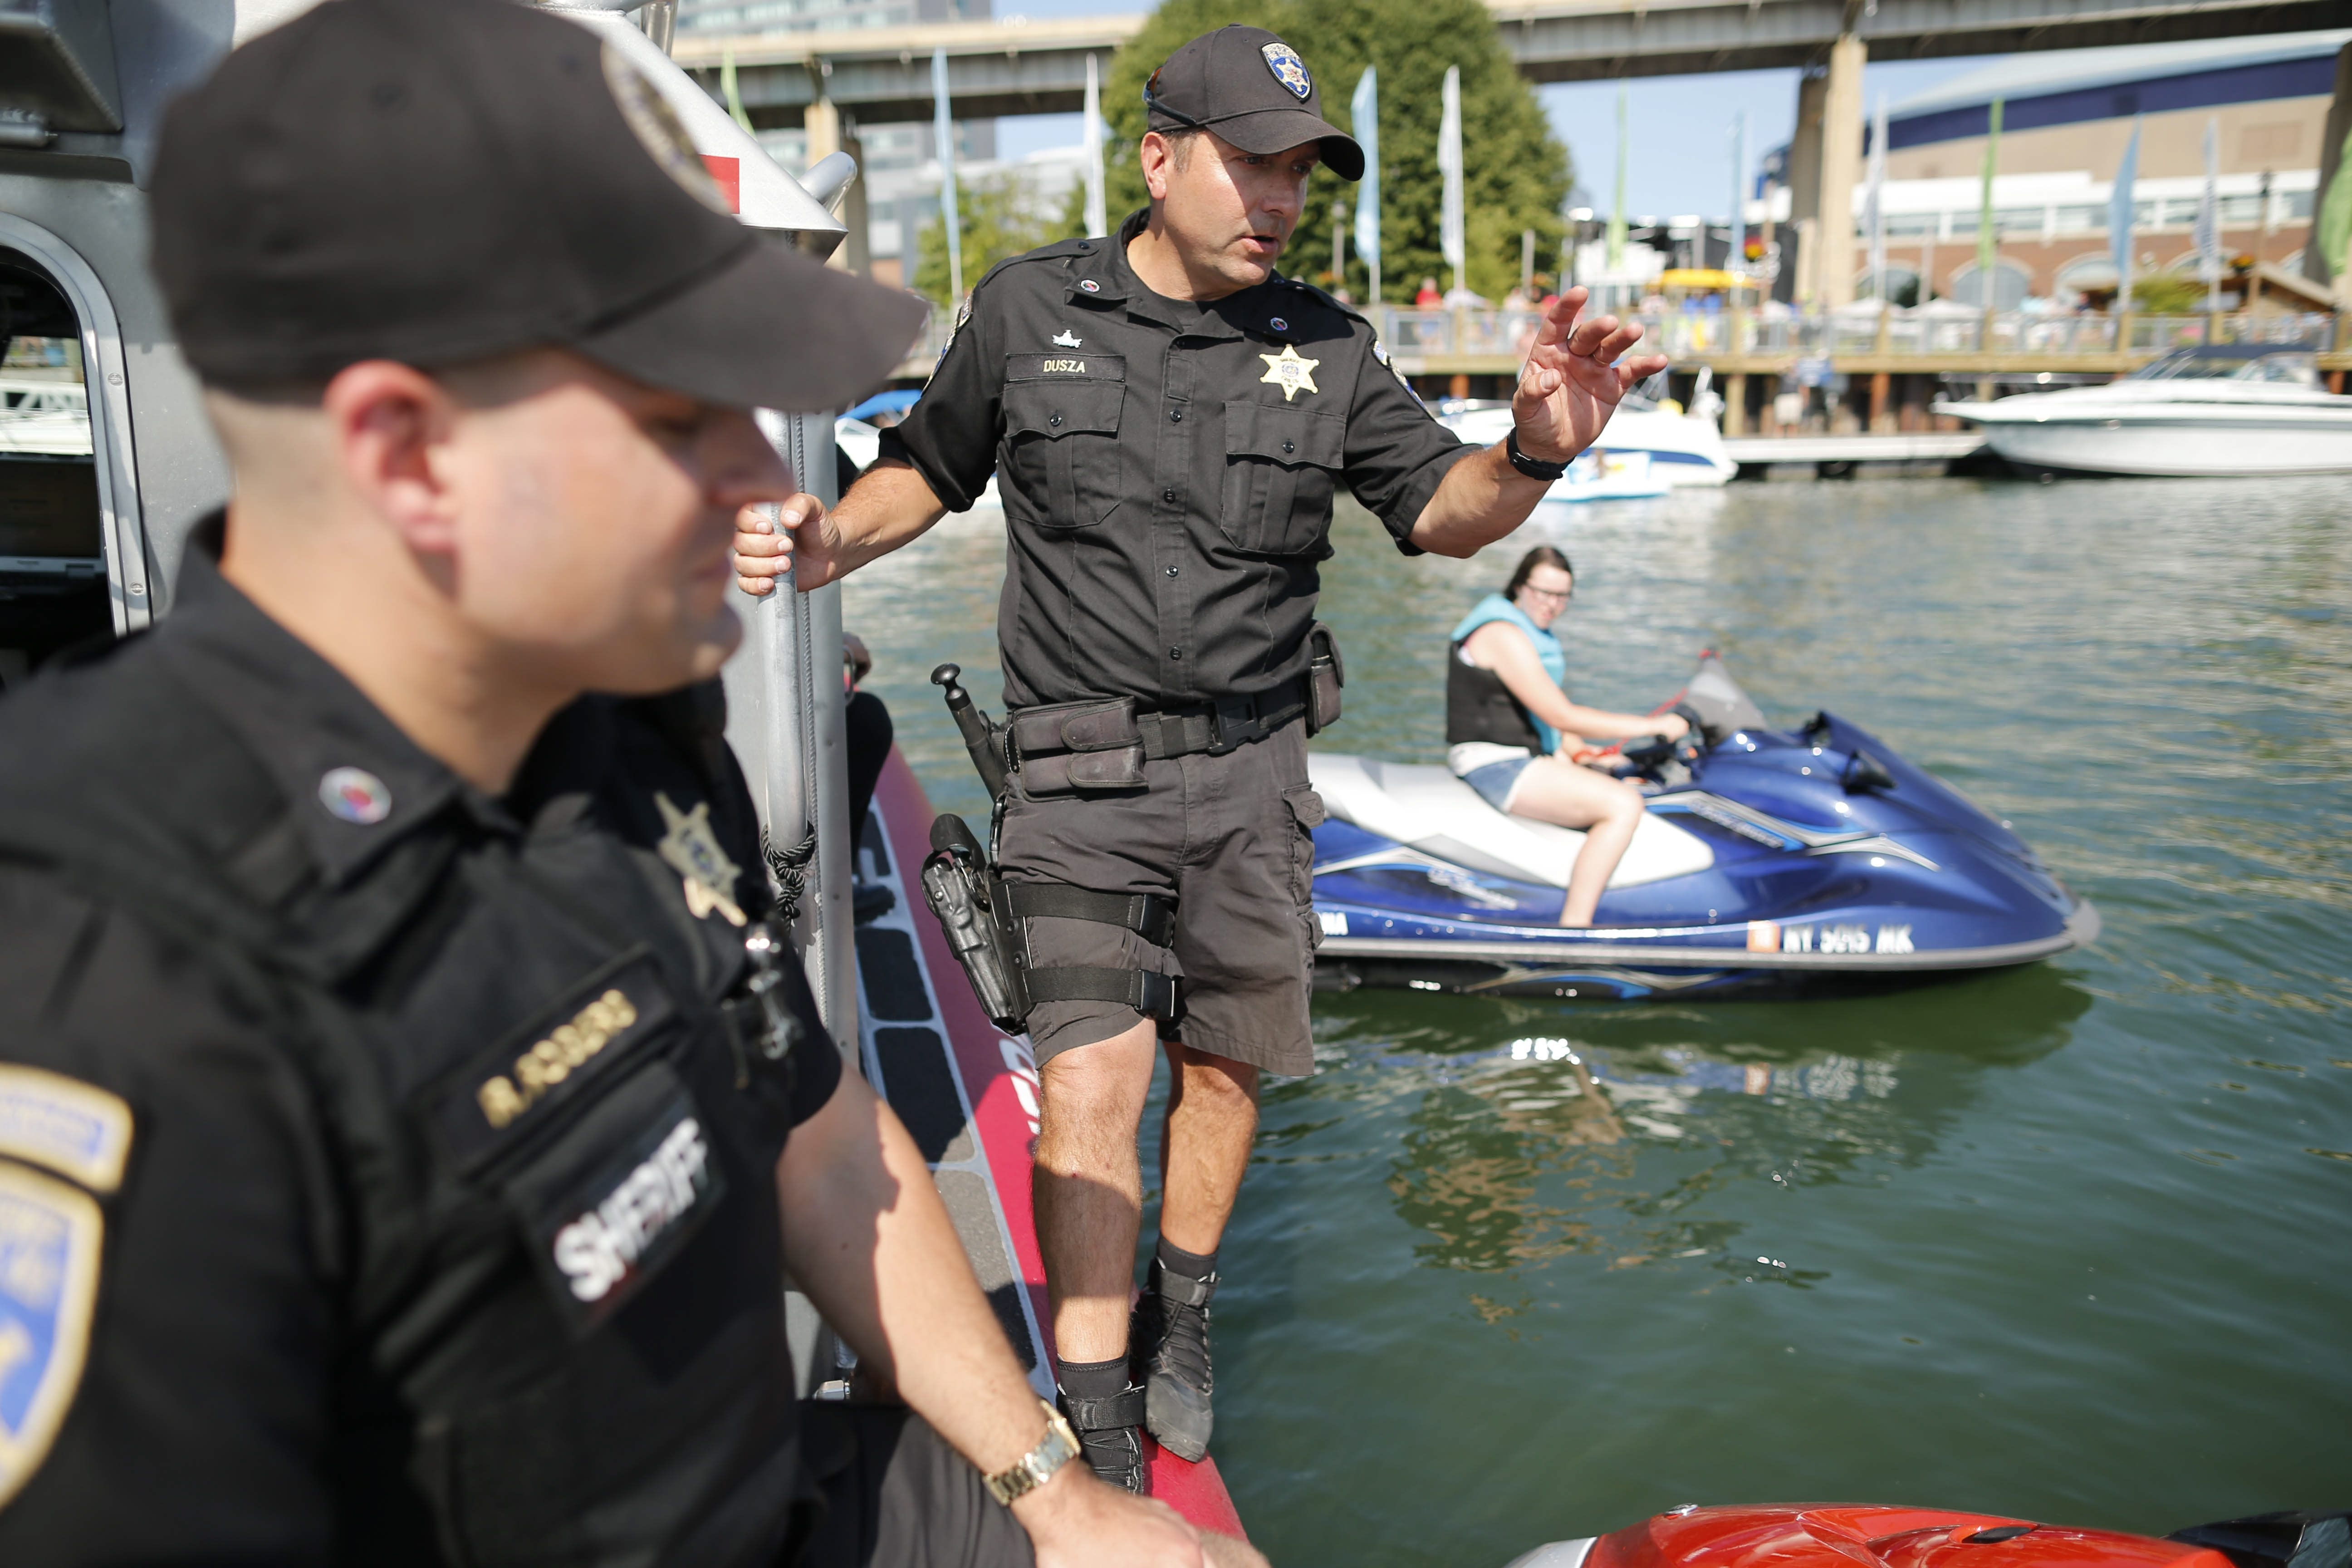 Erie County Sheriff Deputies Ryan Rogers, left, and Tim Dusza, right, chat with jet skiers during a safety inspection off of Canalside in the Buffalo River, Friday, June 24, 2016.  Dusza is giving advice about having a whistle easily accessible for the sake of safety.  The jet skiers passed the inspection.  (Derek Gee/Buffalo News)